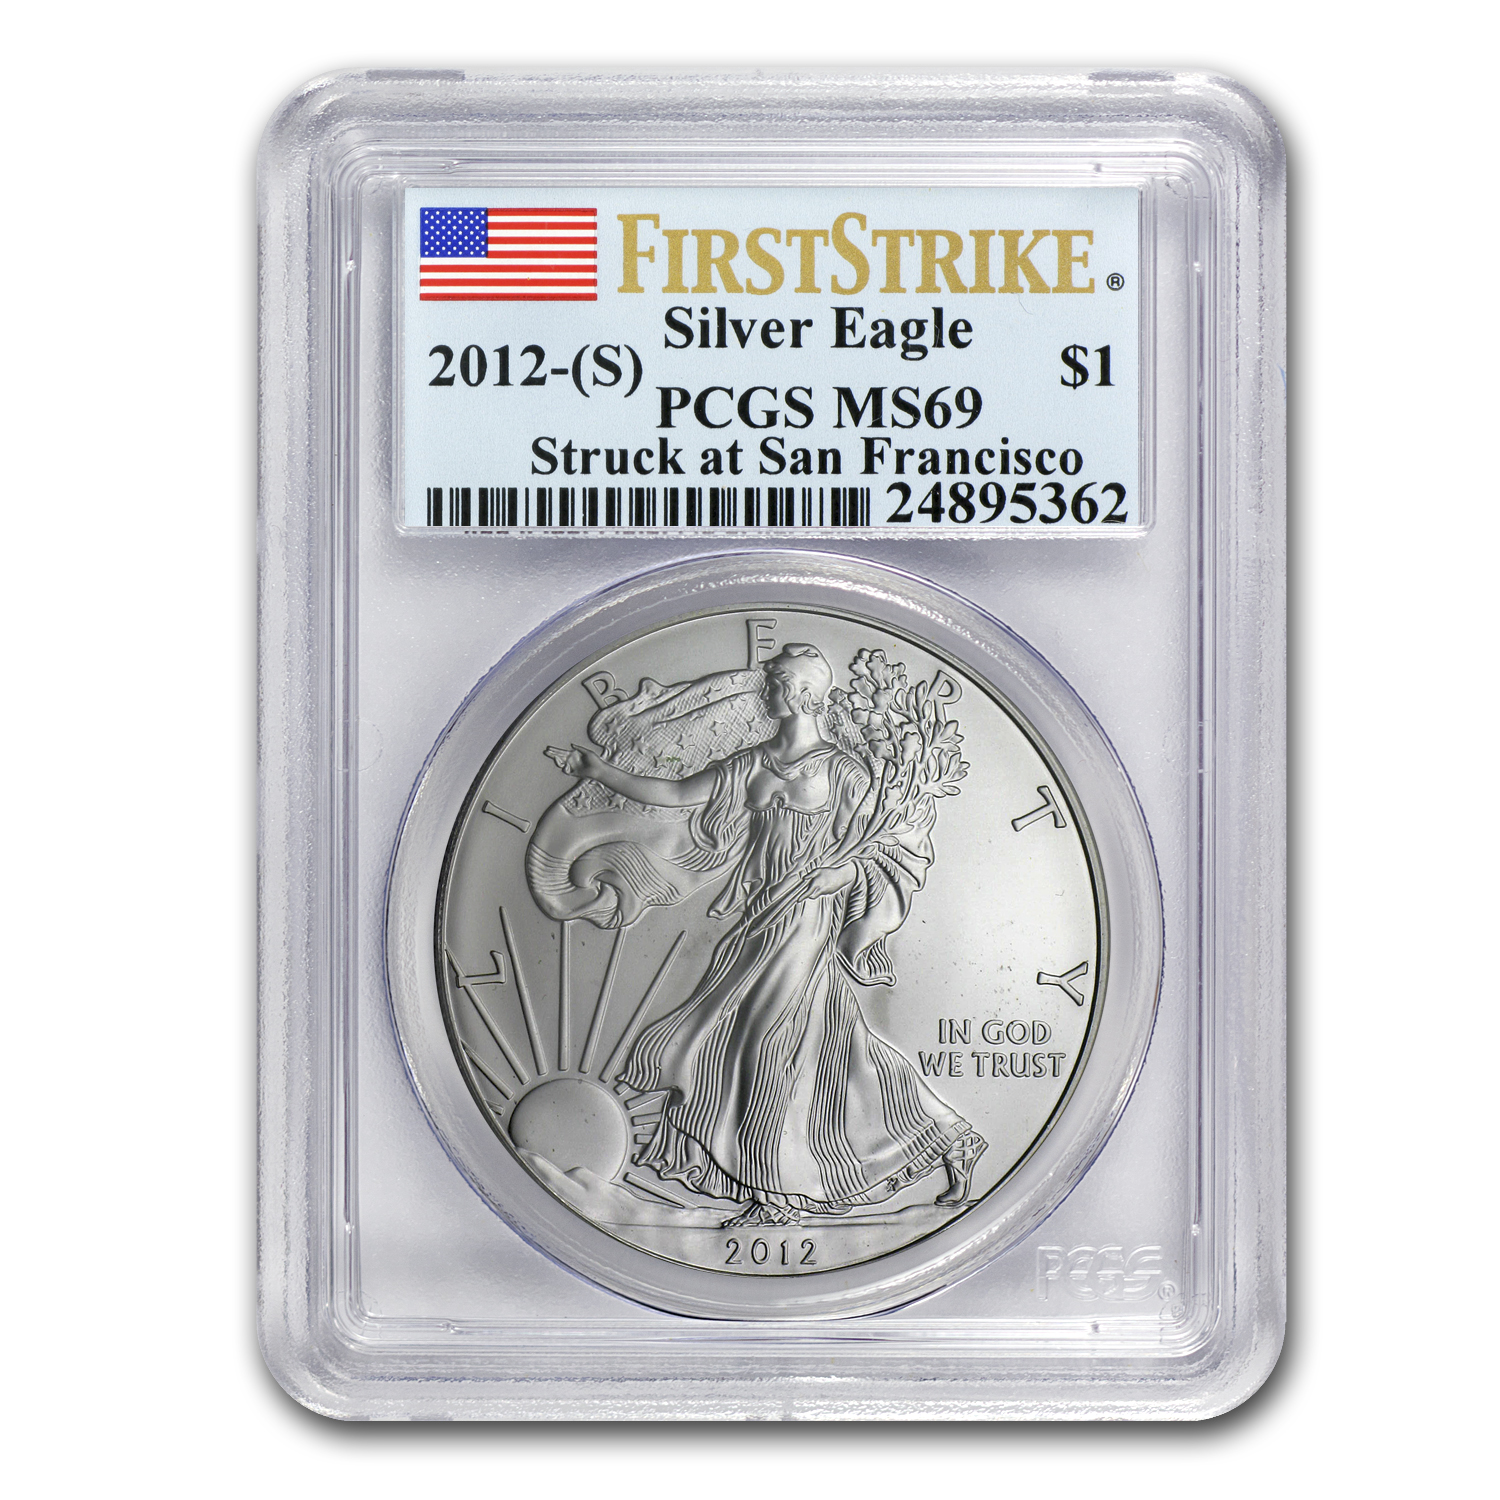 2012 (S) American Silver Eagle - MS-69 PCGS - First Strike